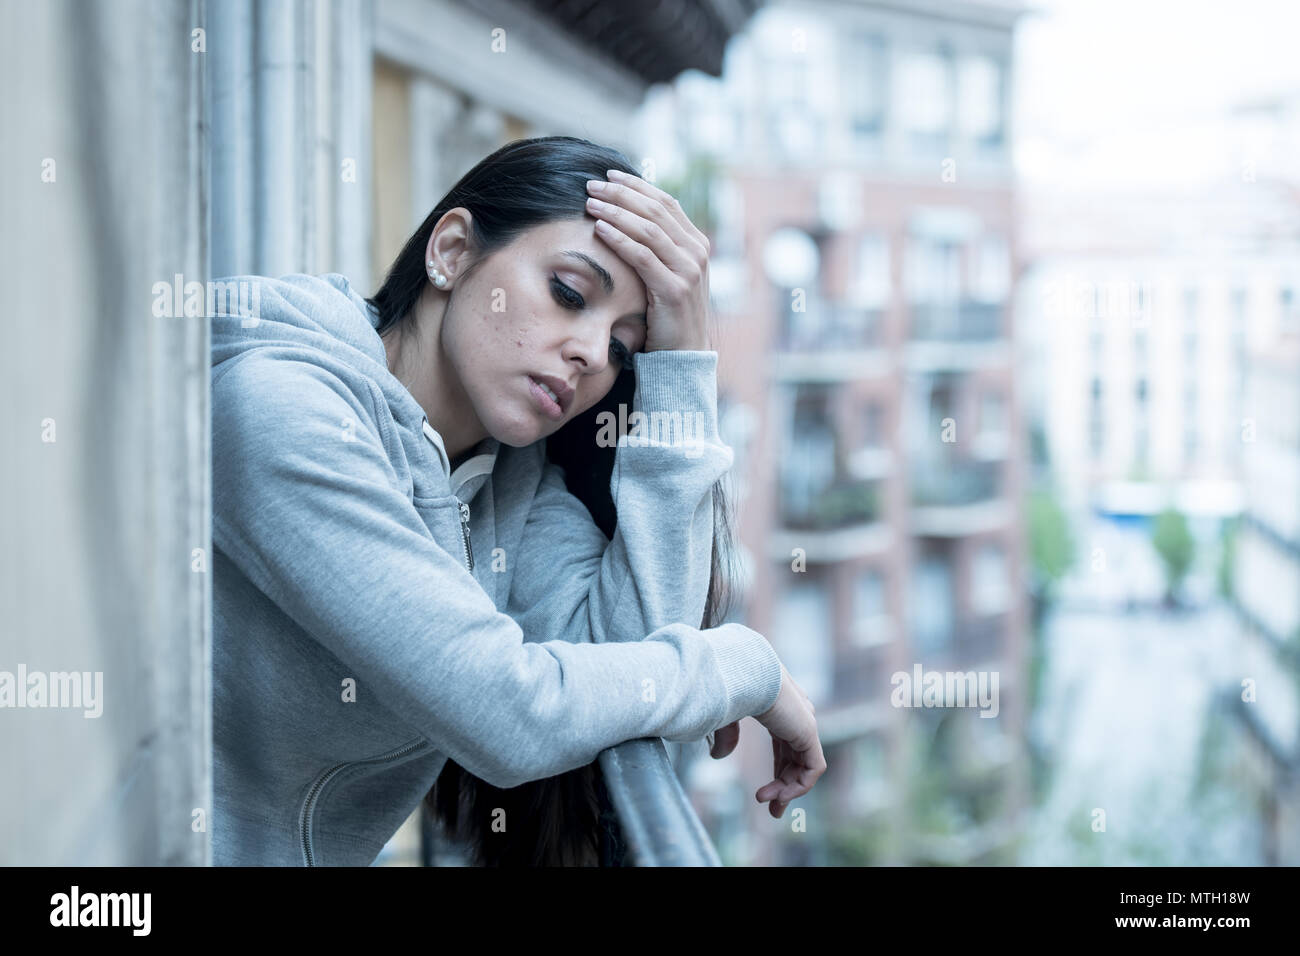 Beautiful latin depressed lonely woman staring out feeling sad, pain, grief on a balcony at home. Crisis, depression and mental health concept - Stock Image